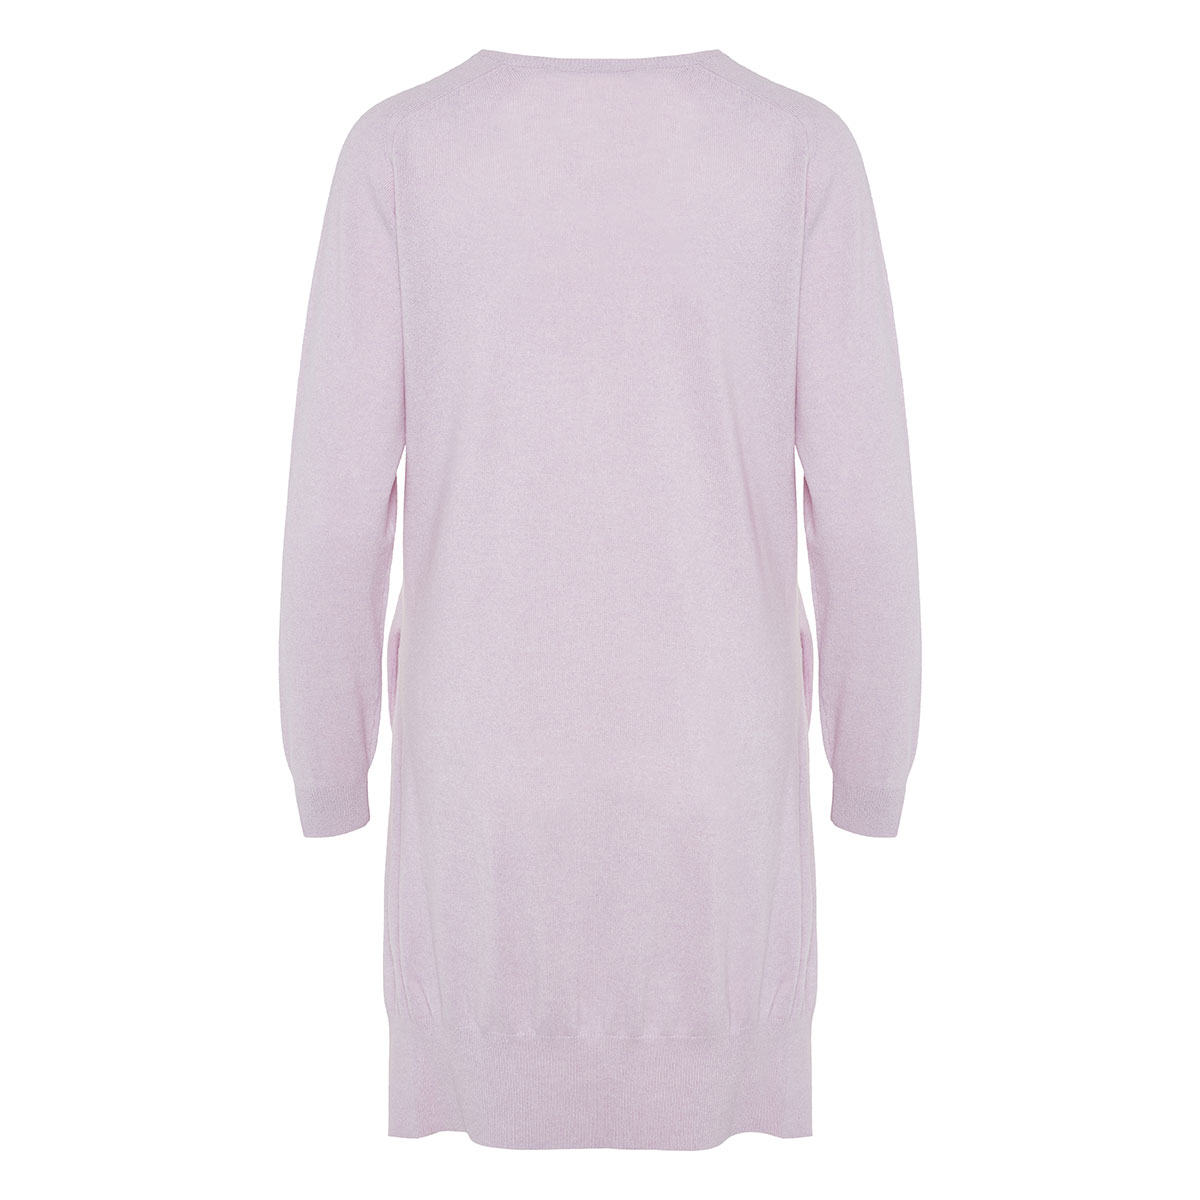 Oversized cashmere-knitted dress